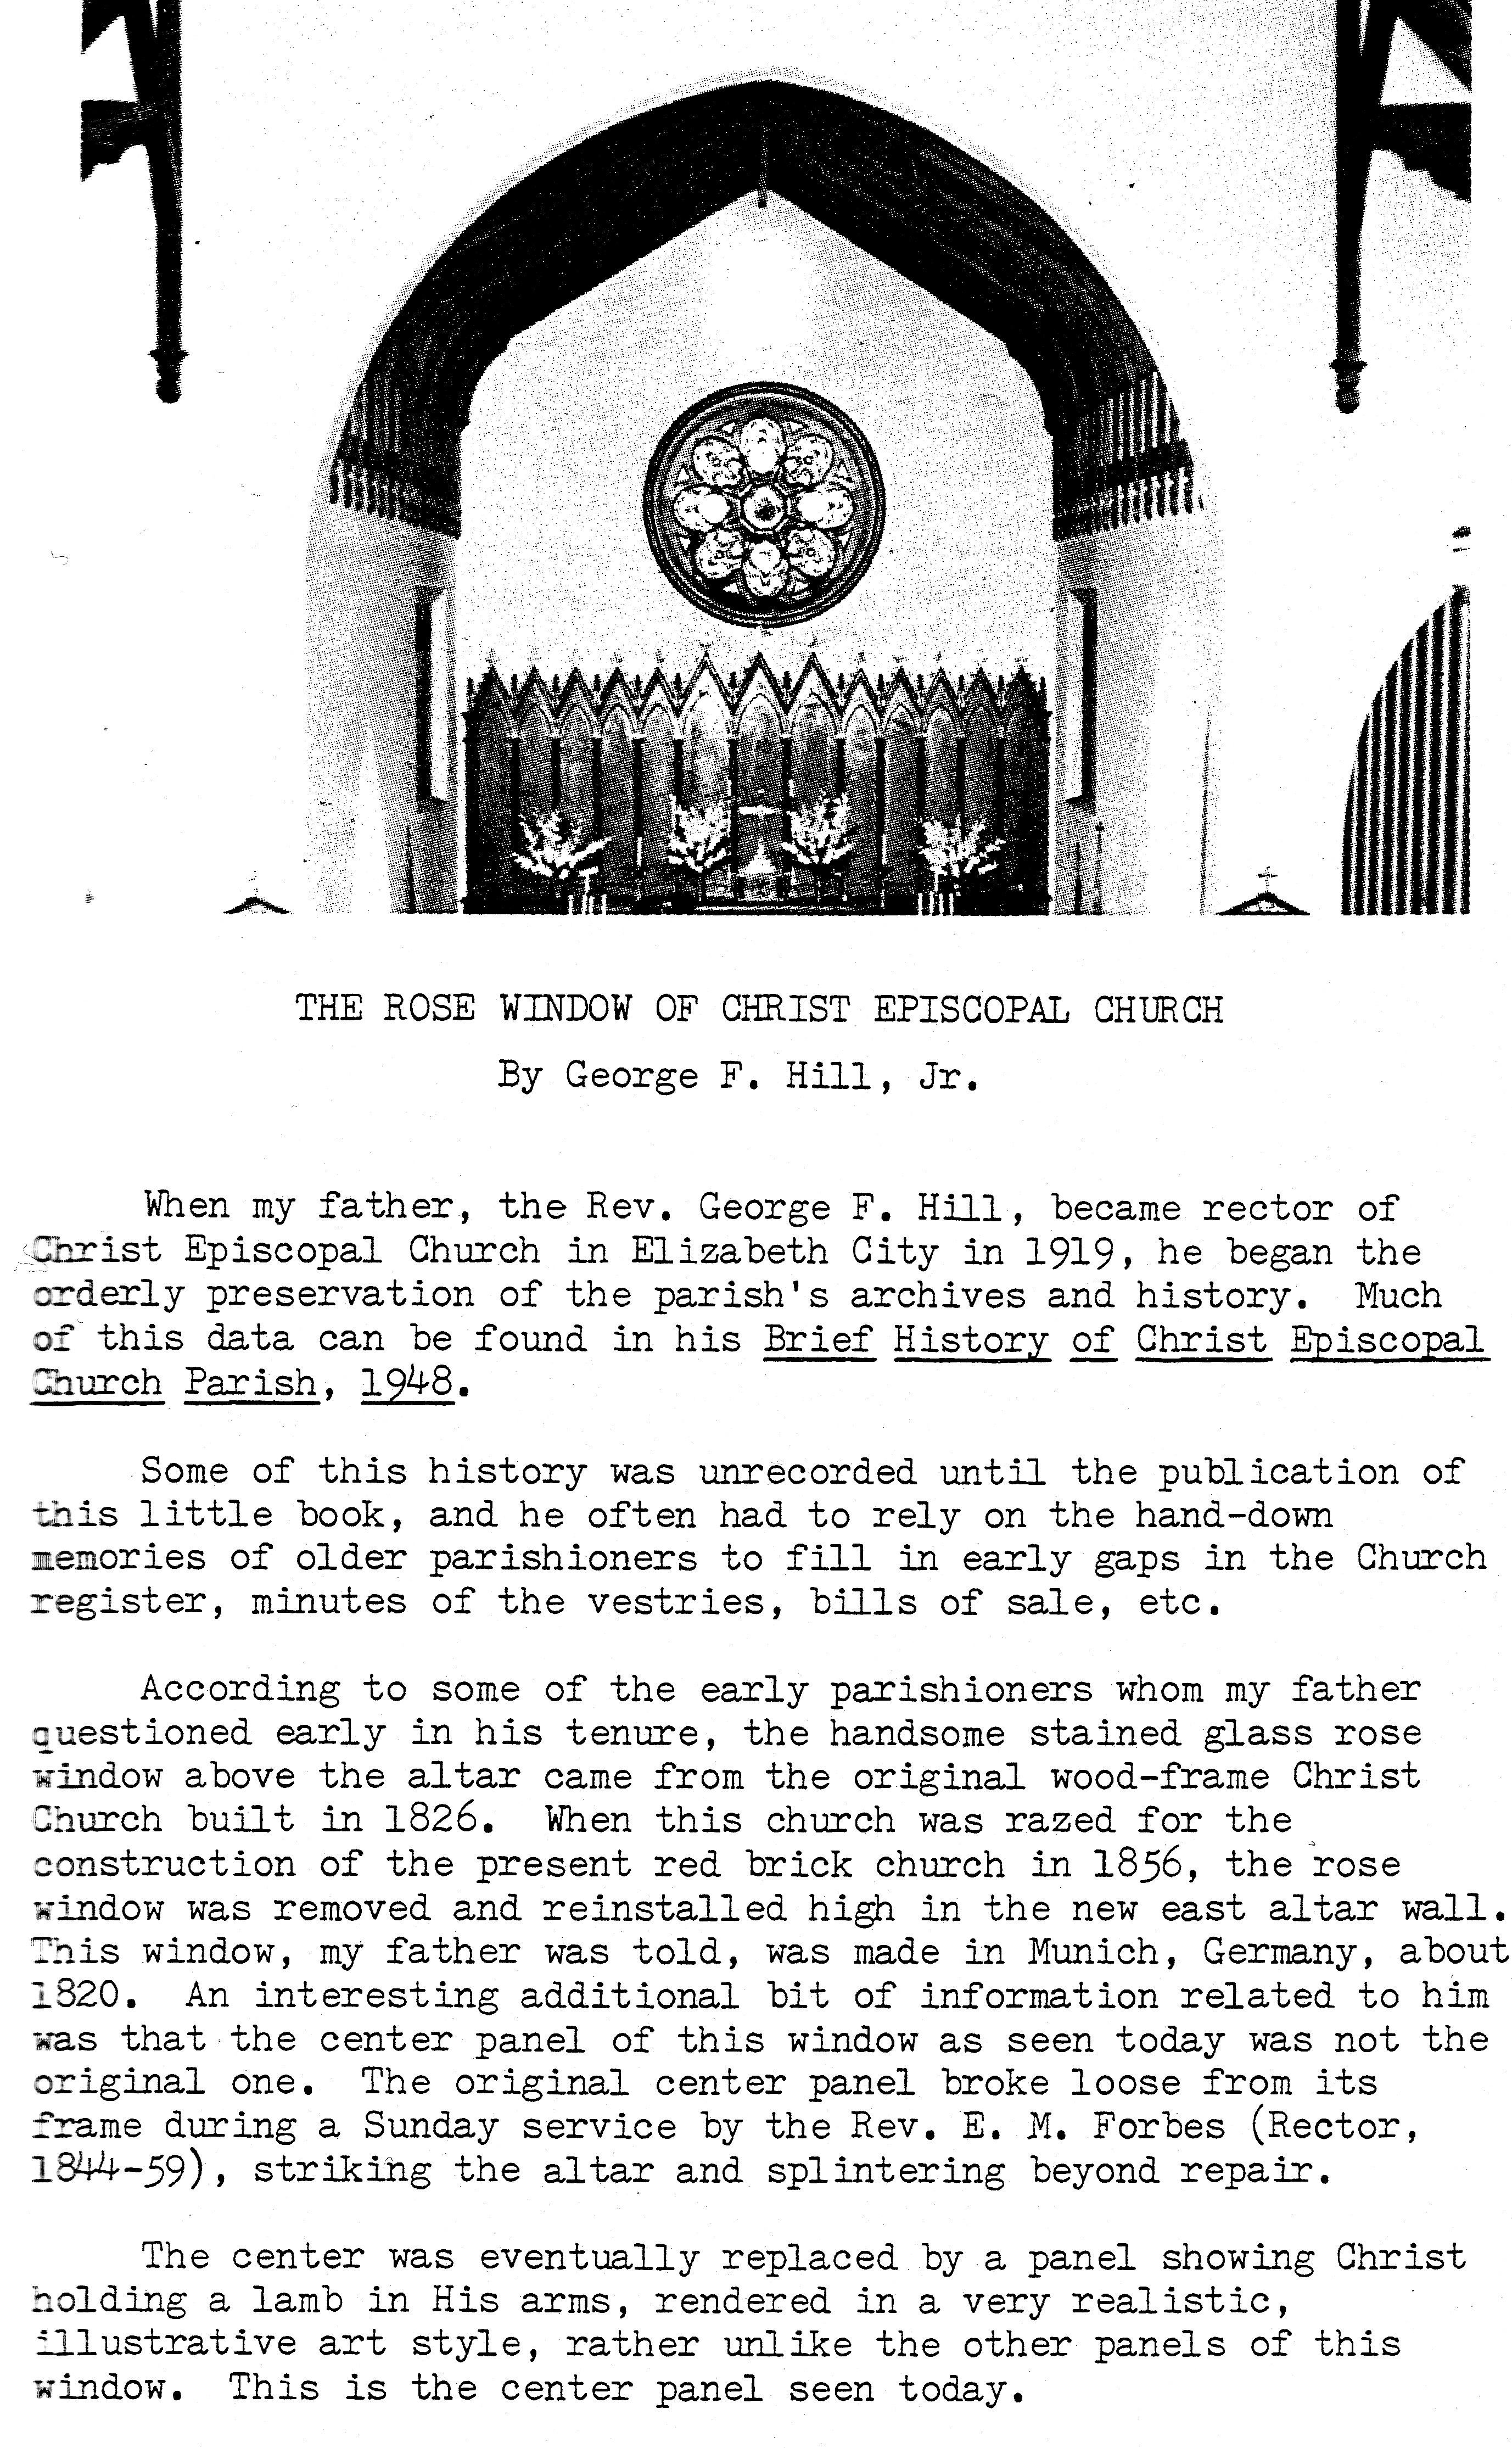 THE ROSE WINDOW OF CHRIST EPISCOPAL CHURCH By George F